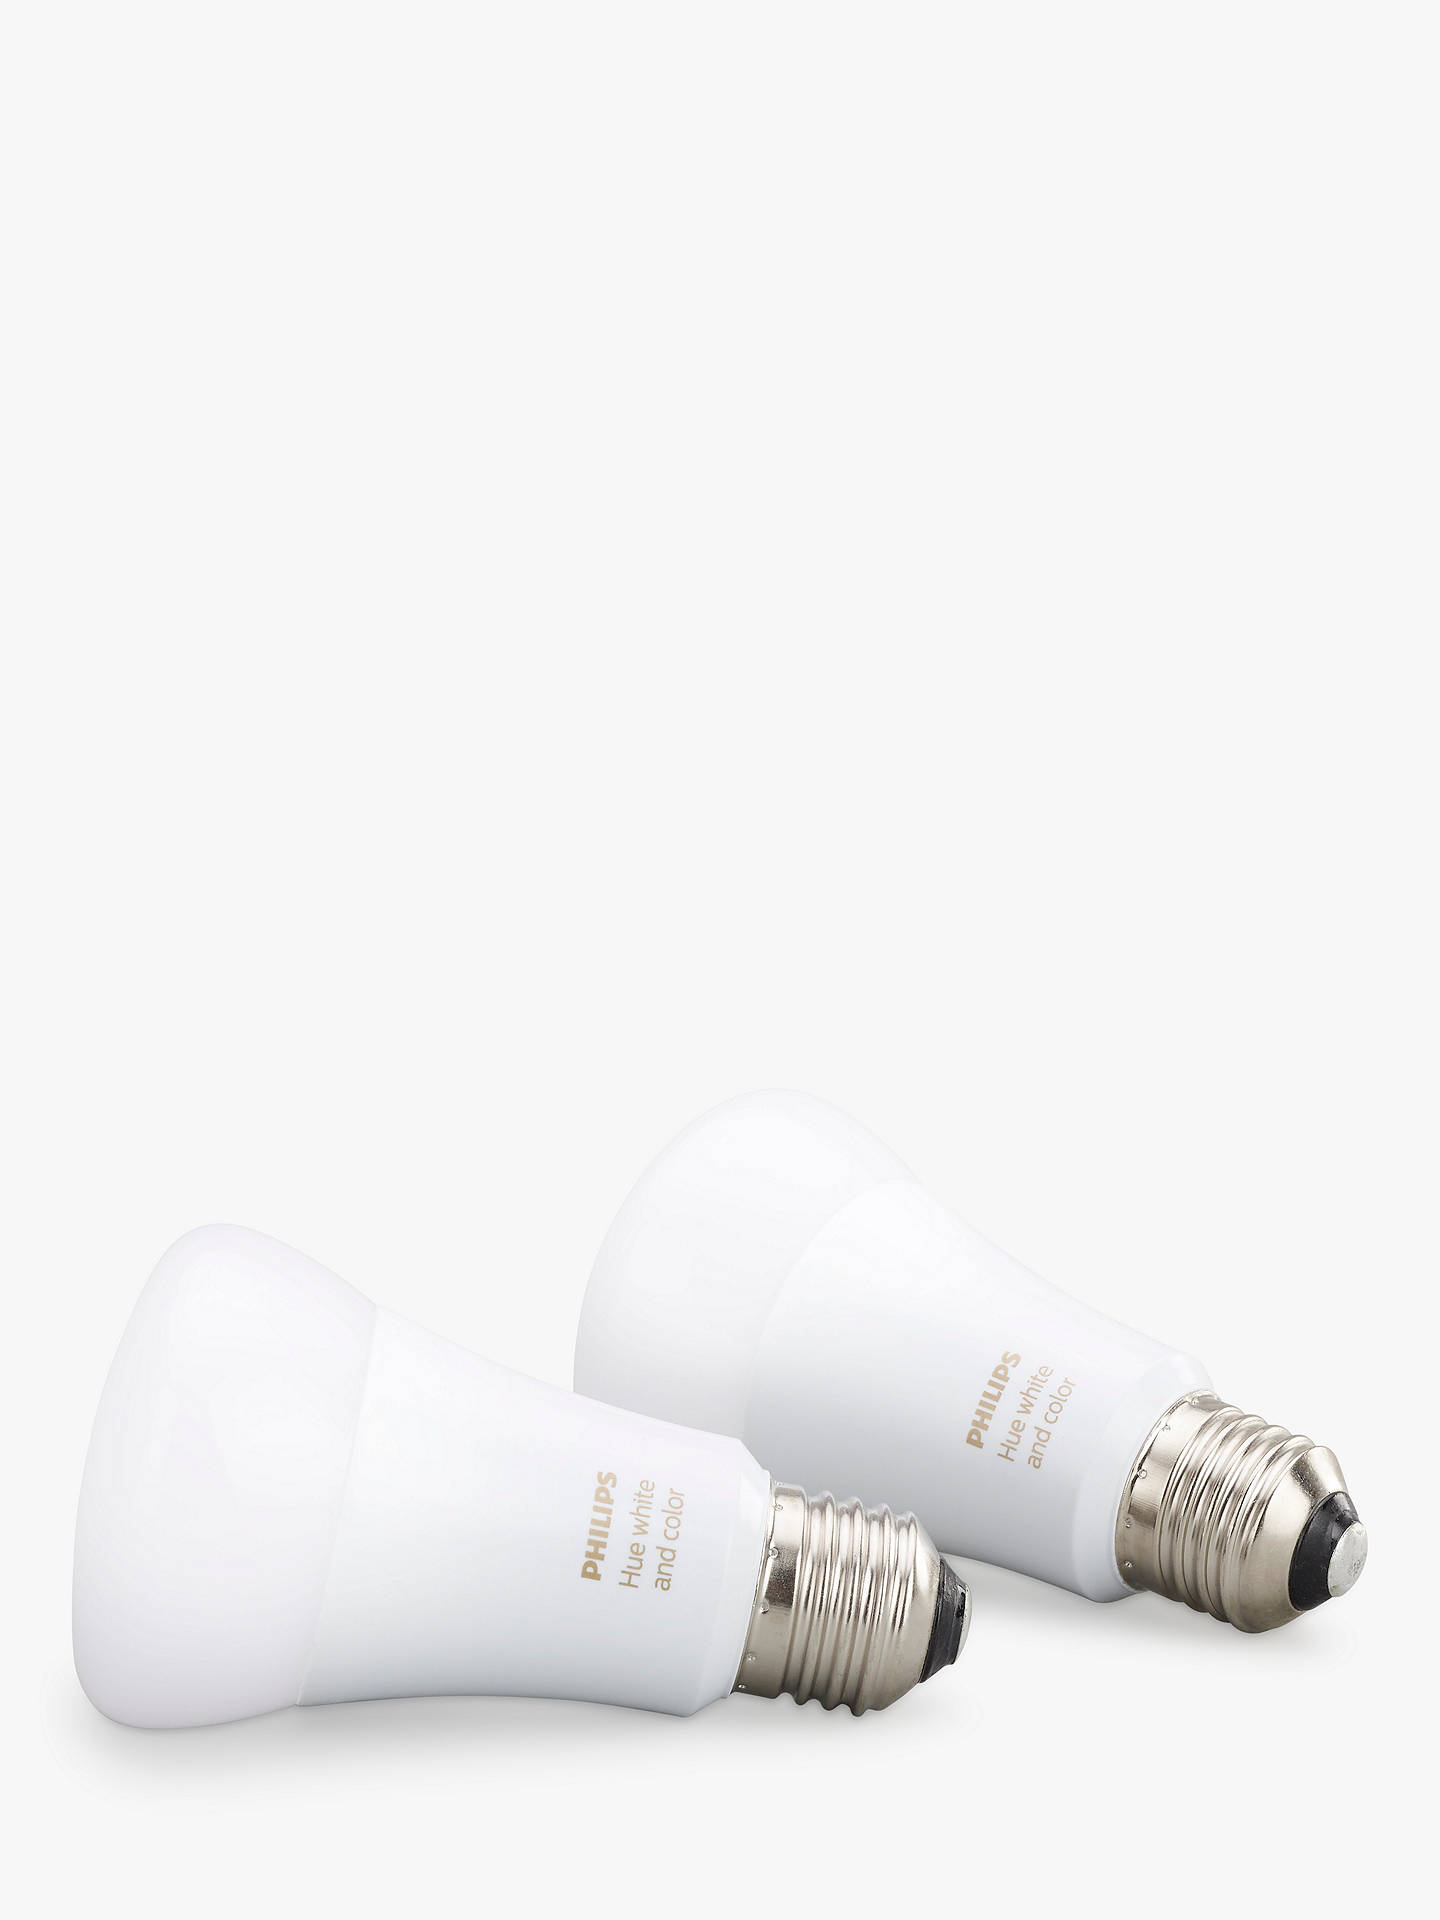 Buy Philips Hue White and Colour Ambiance Wireless Lighting LED Colour Changing Light Bulb, 9W A60 E27 Edison Screw Bulb, Pack of 2 Online at johnlewis.com